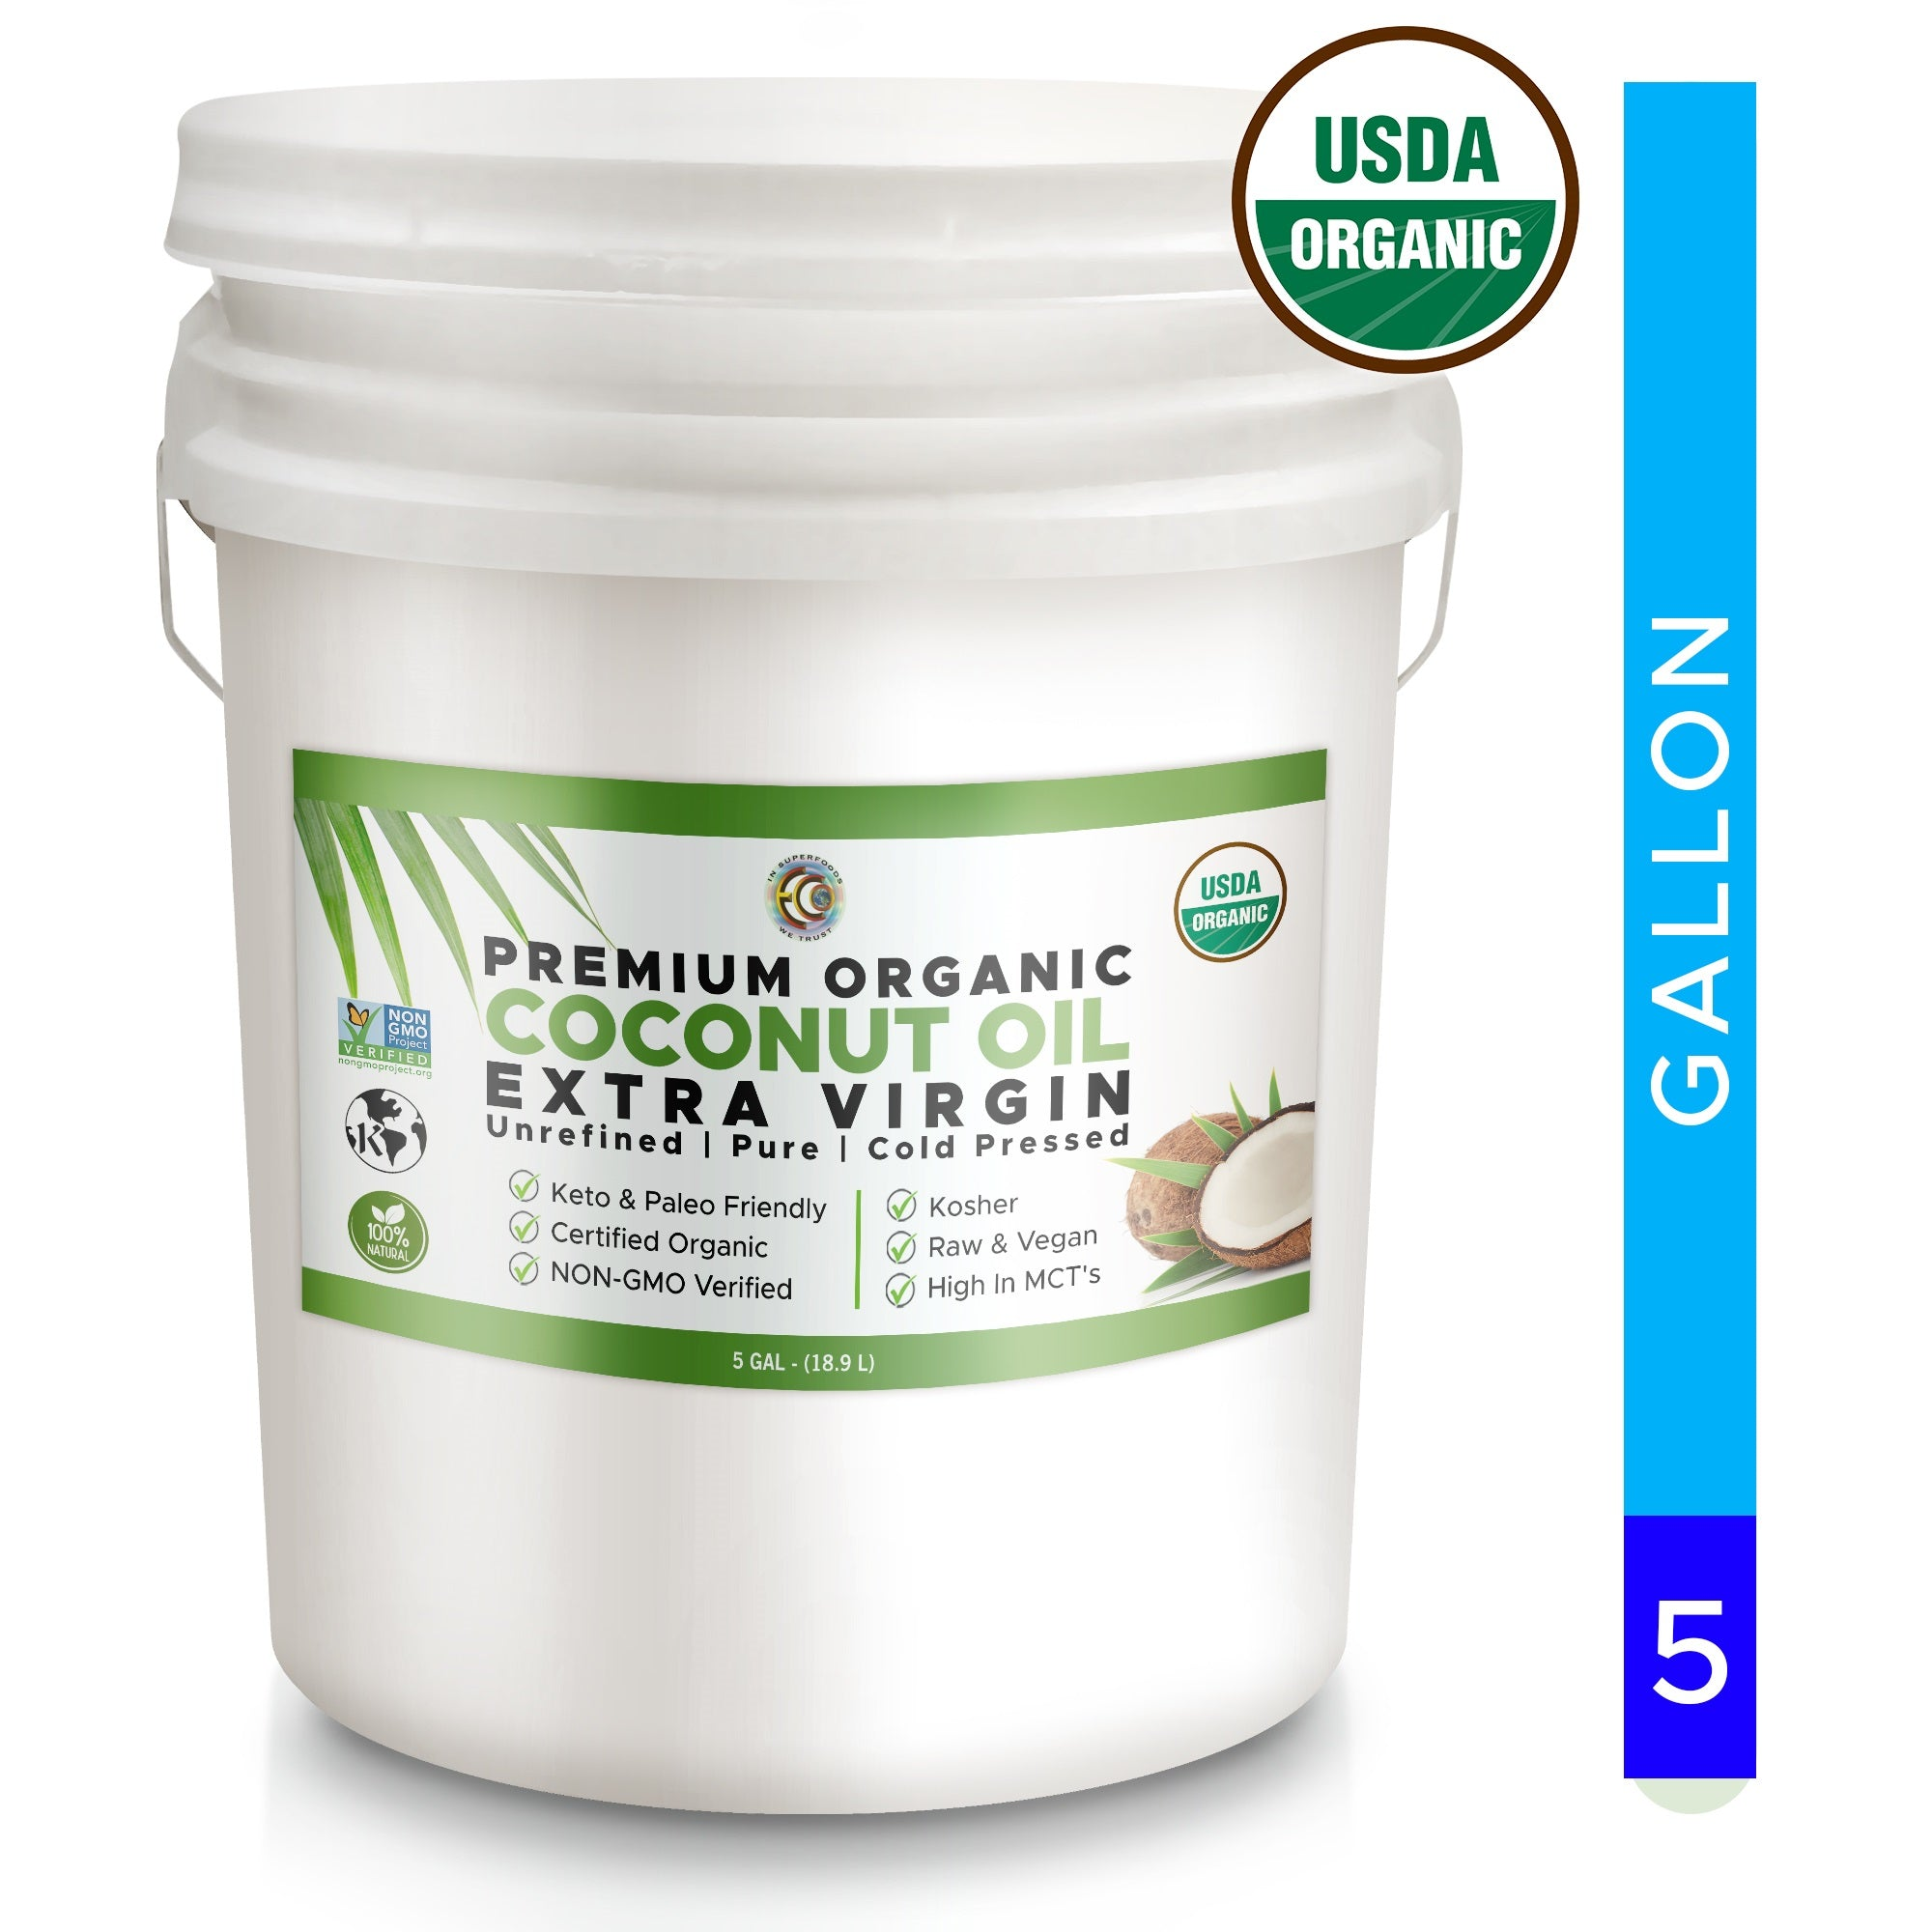 Coconut Oil | USDA Certified Organic | Kosher | Pure and Unrefined - 5 Gallon